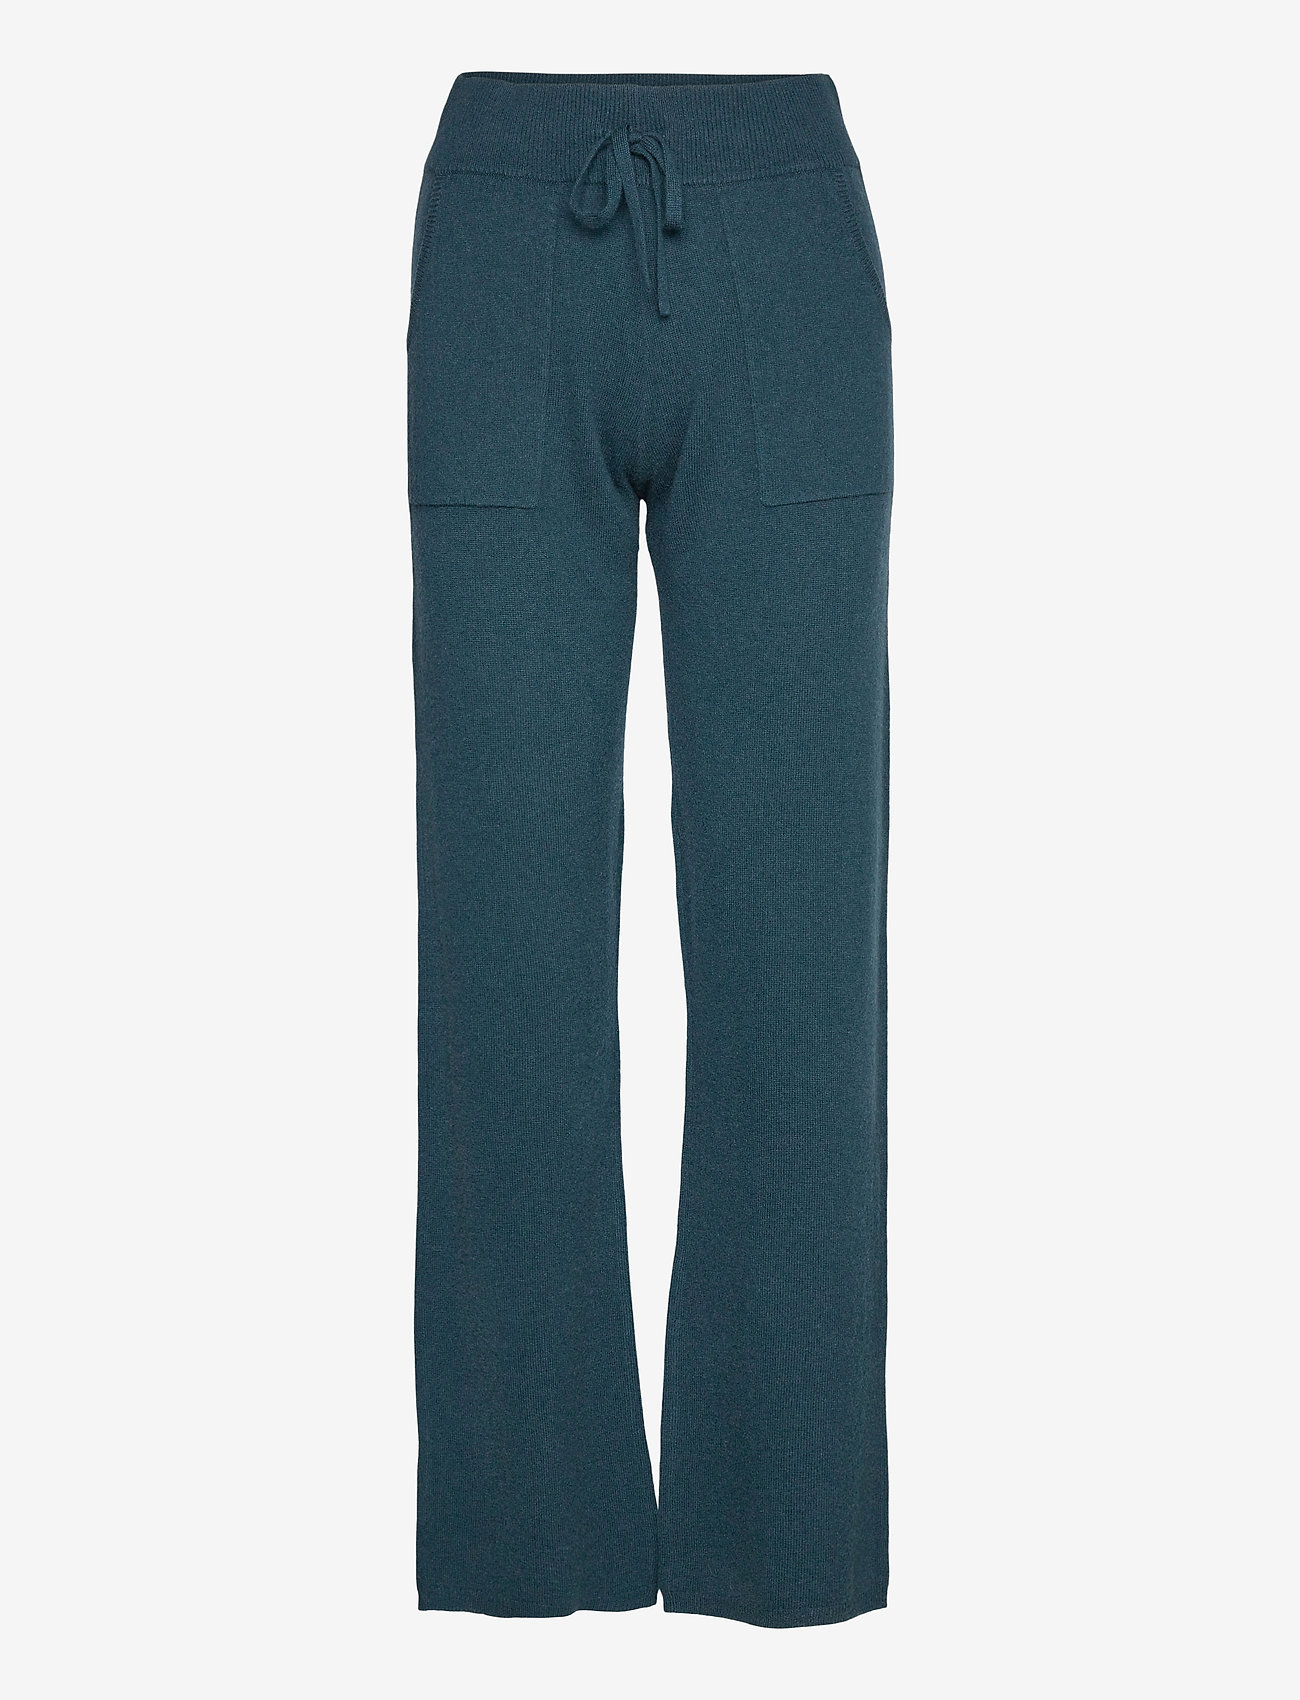 Andiata - Christie knit joggers - sweatpants - teal green - 1